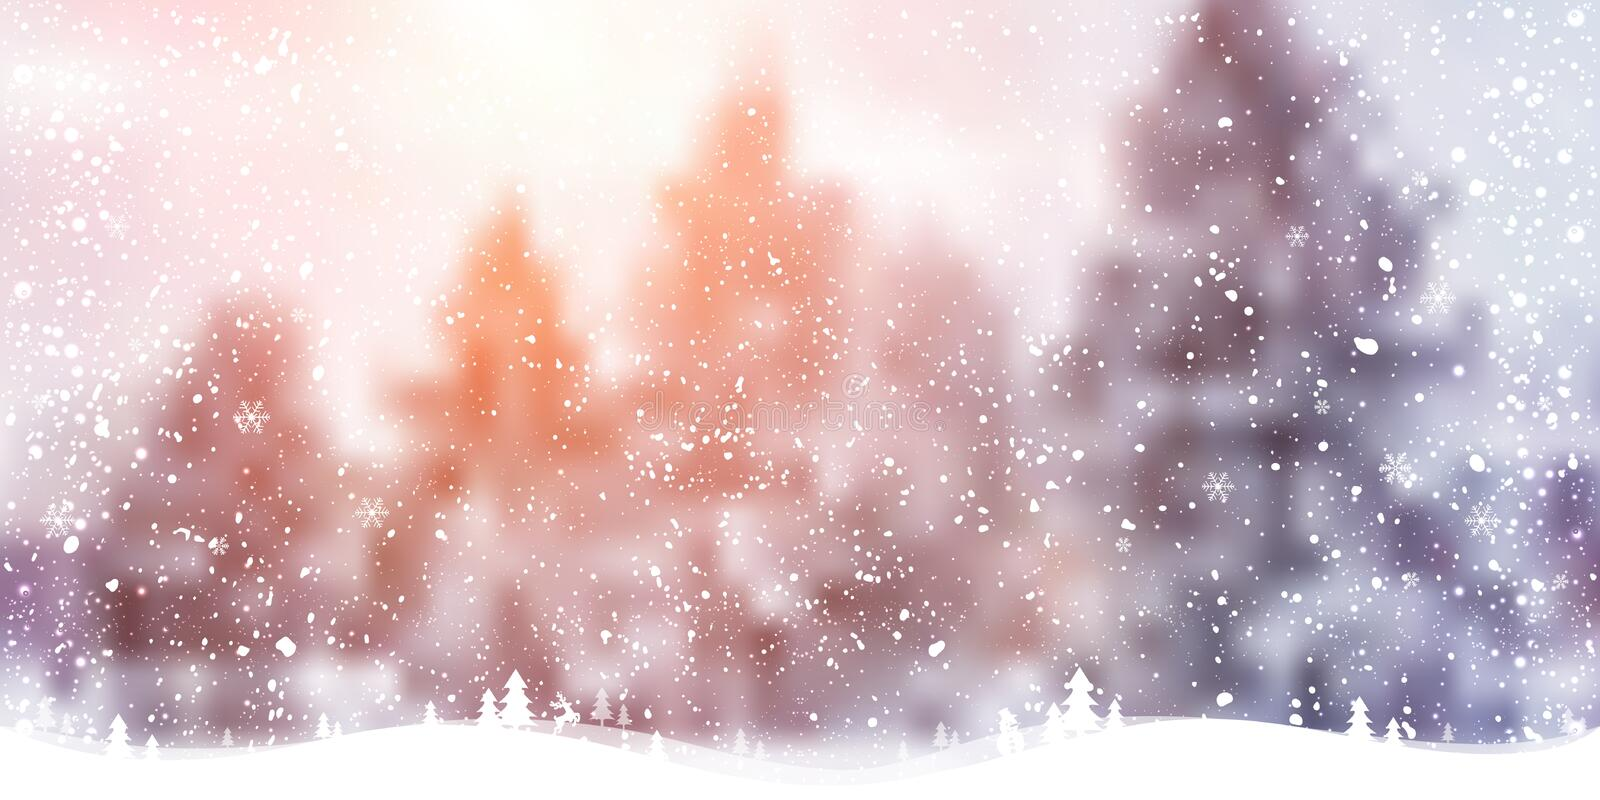 Winter Christmas background with landscape, forest, snowflakes, light, stars. Xmas and New Year card royalty free illustration